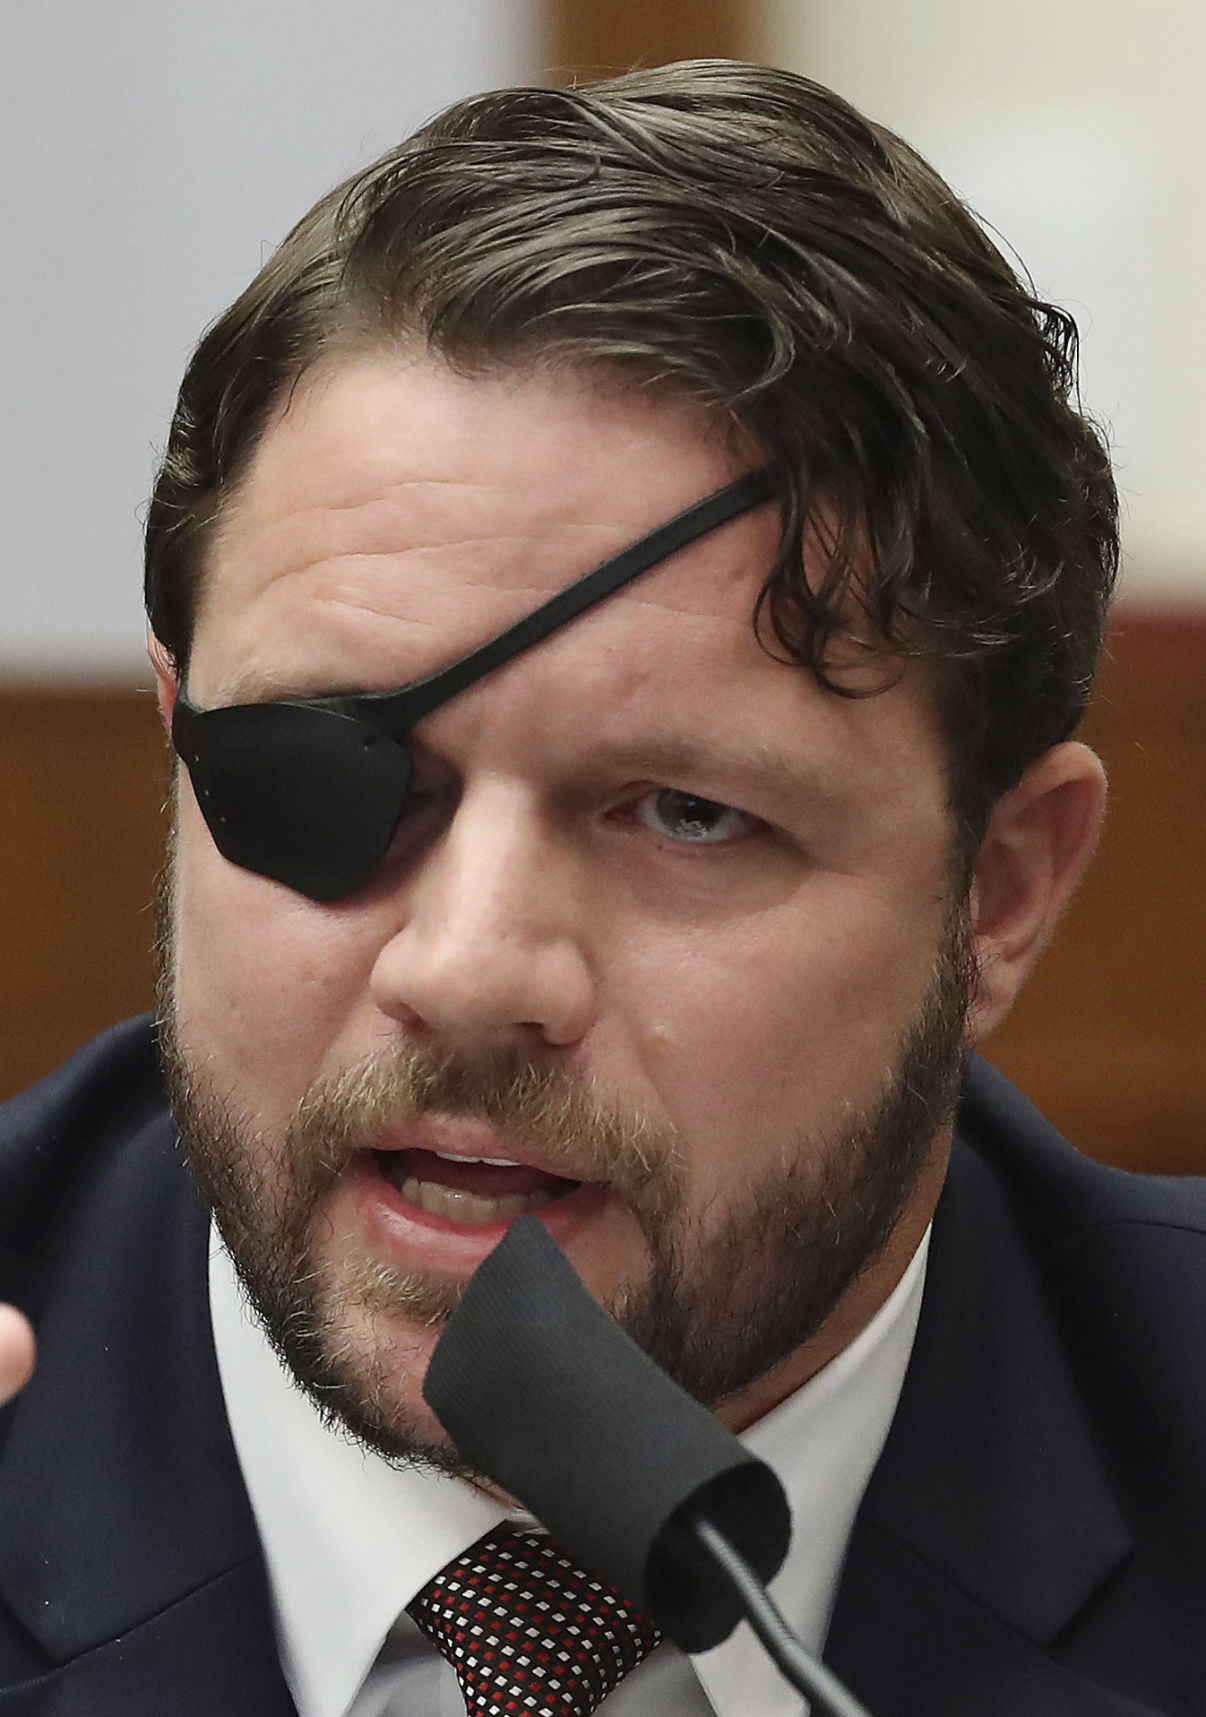 Rep. Dan Crenshaw undergoes emergency surgery on his remaining eye, 'terrifying prognosis' for ex-Navy SEAL